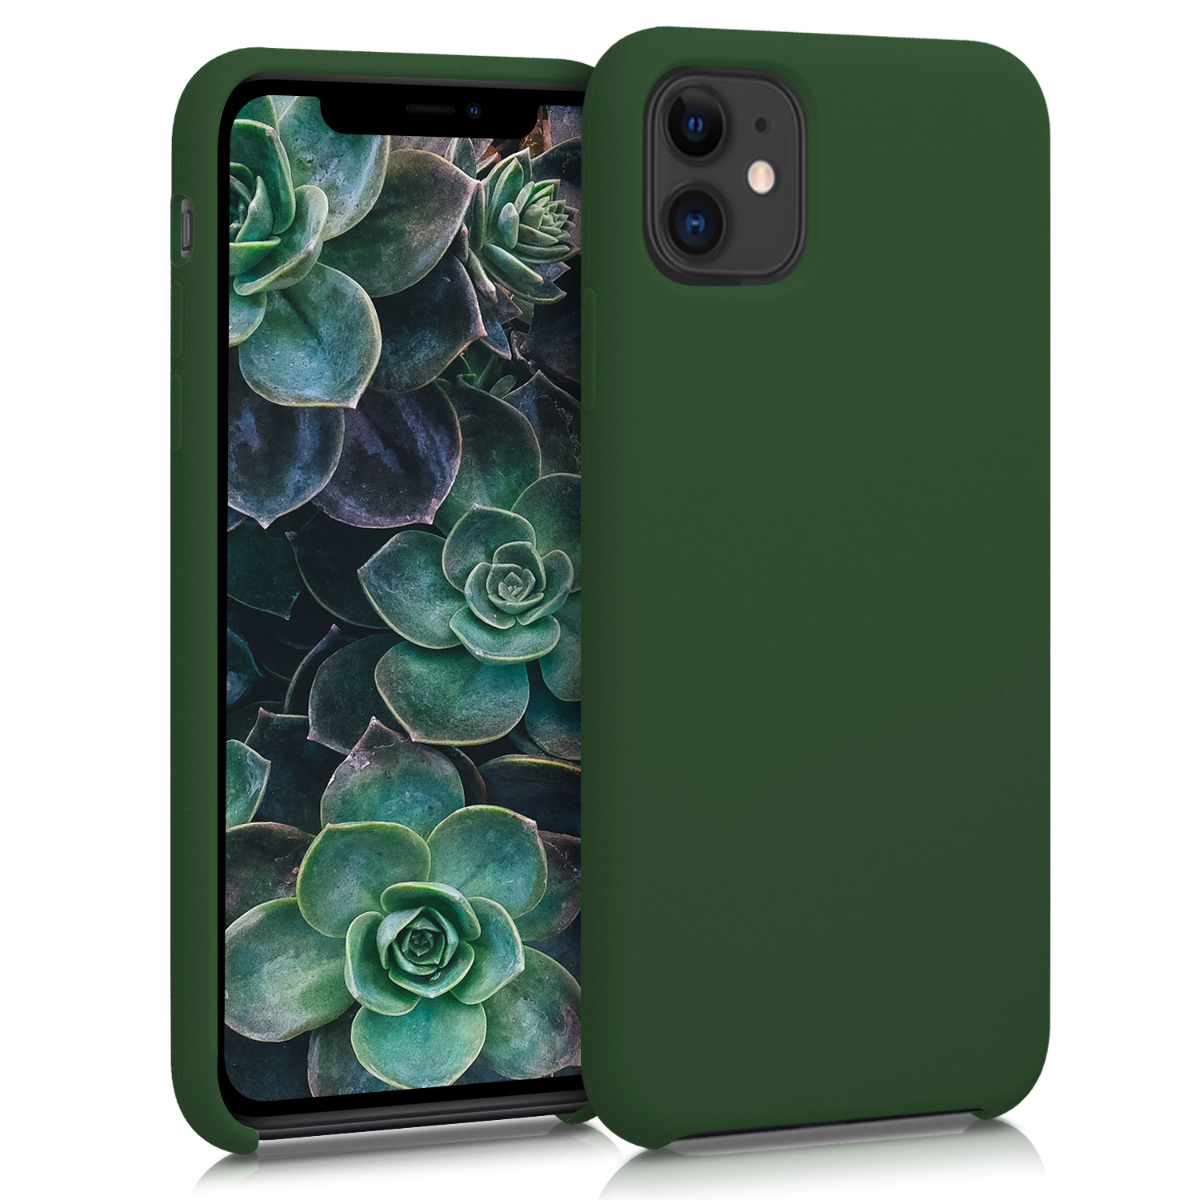 KW Θήκη Σιλικόνης Apple iPhone 11 - Soft Flexible Rubber - Dark Green (49724.80)